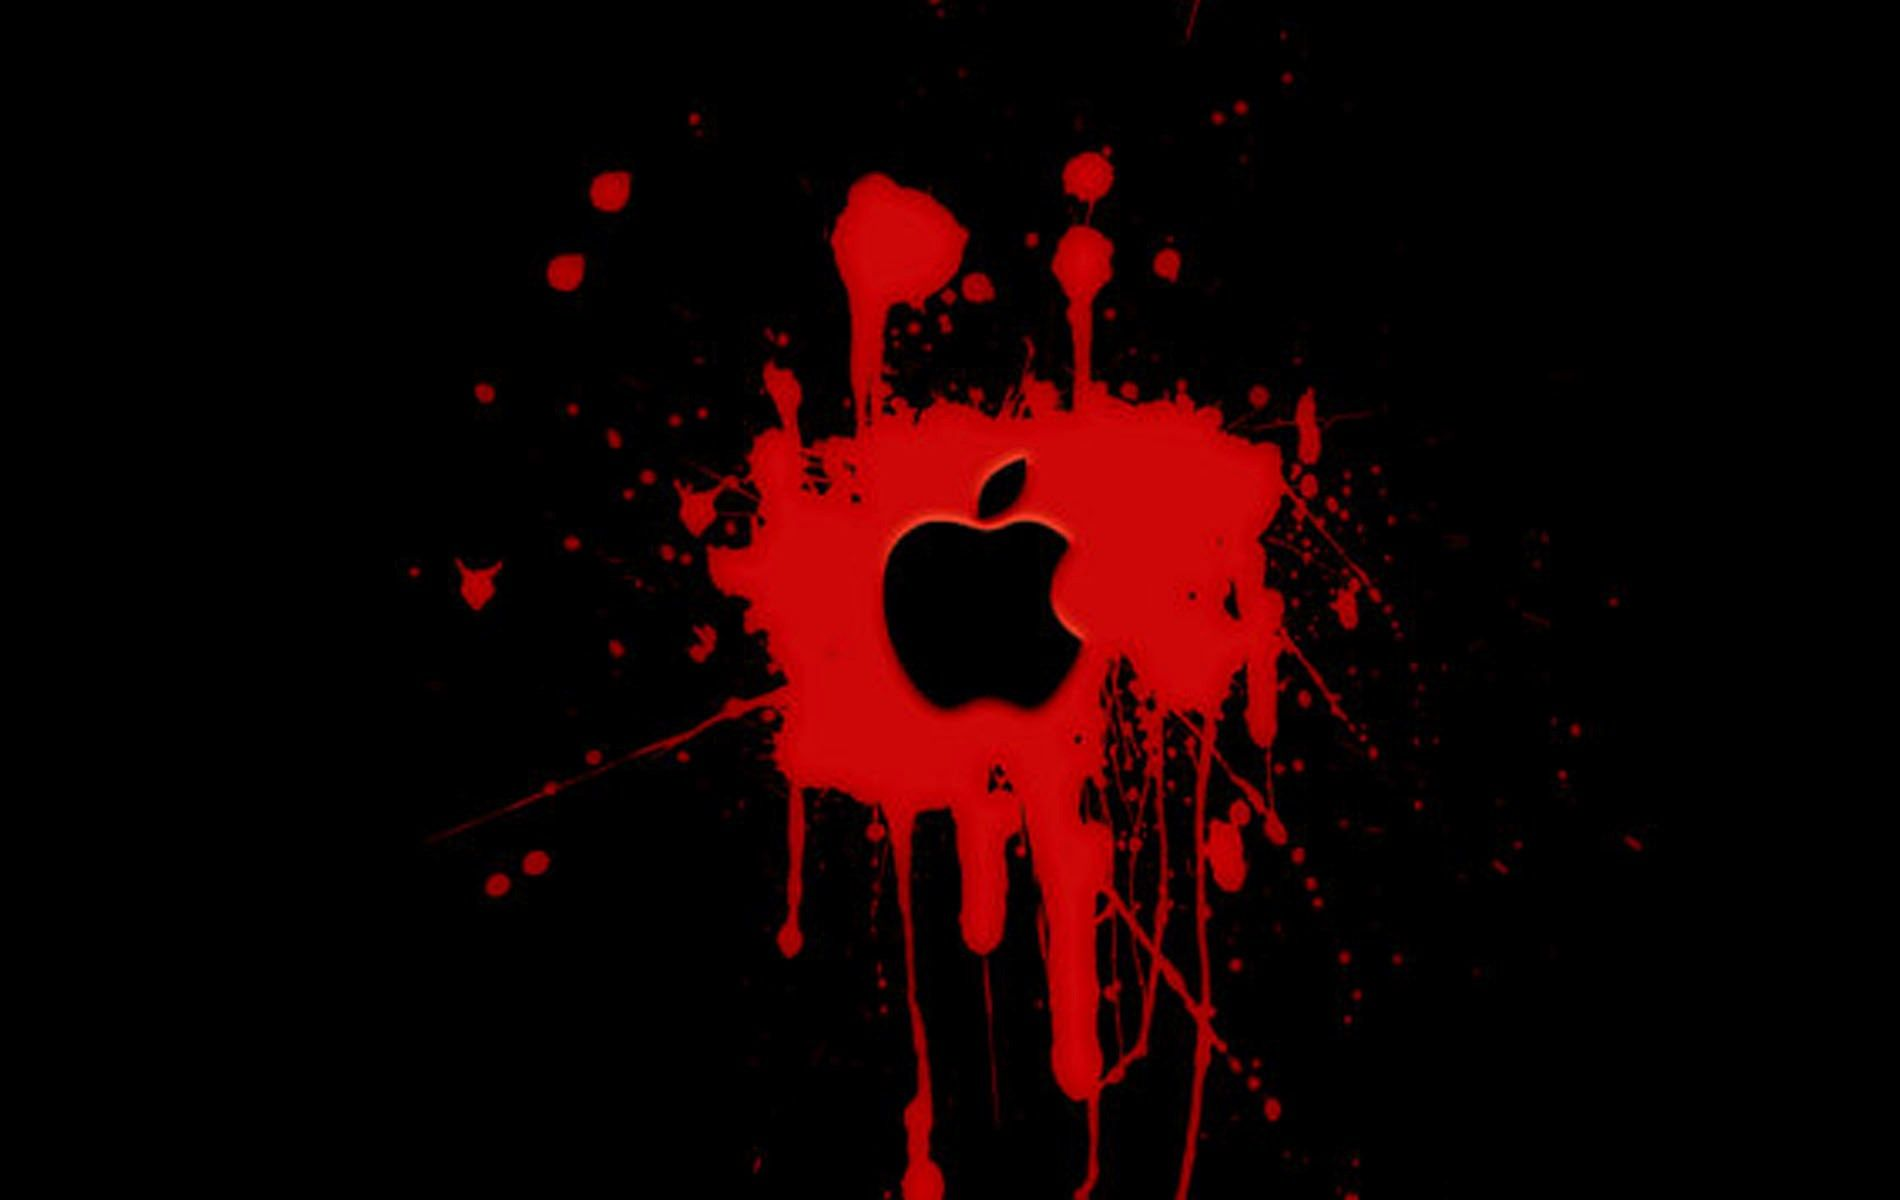 2017-03-09 - apple wallpaper pictures free, #1531755 | gogolmogol